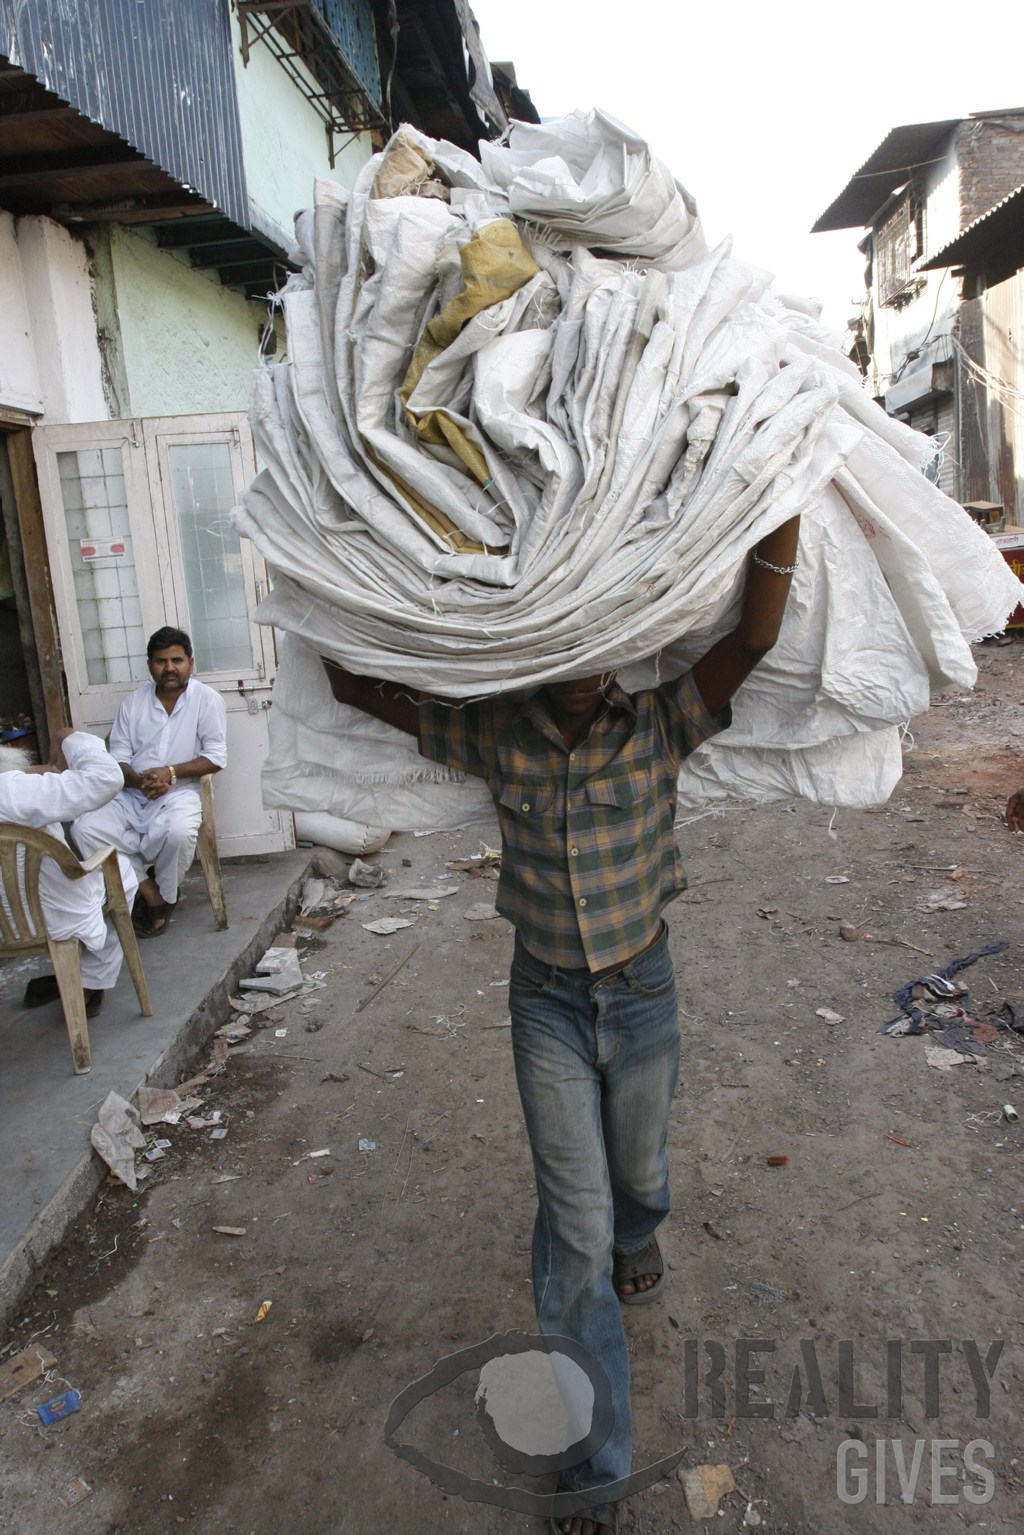 Ragpicker carrying recycled bags - Cory Goldberg